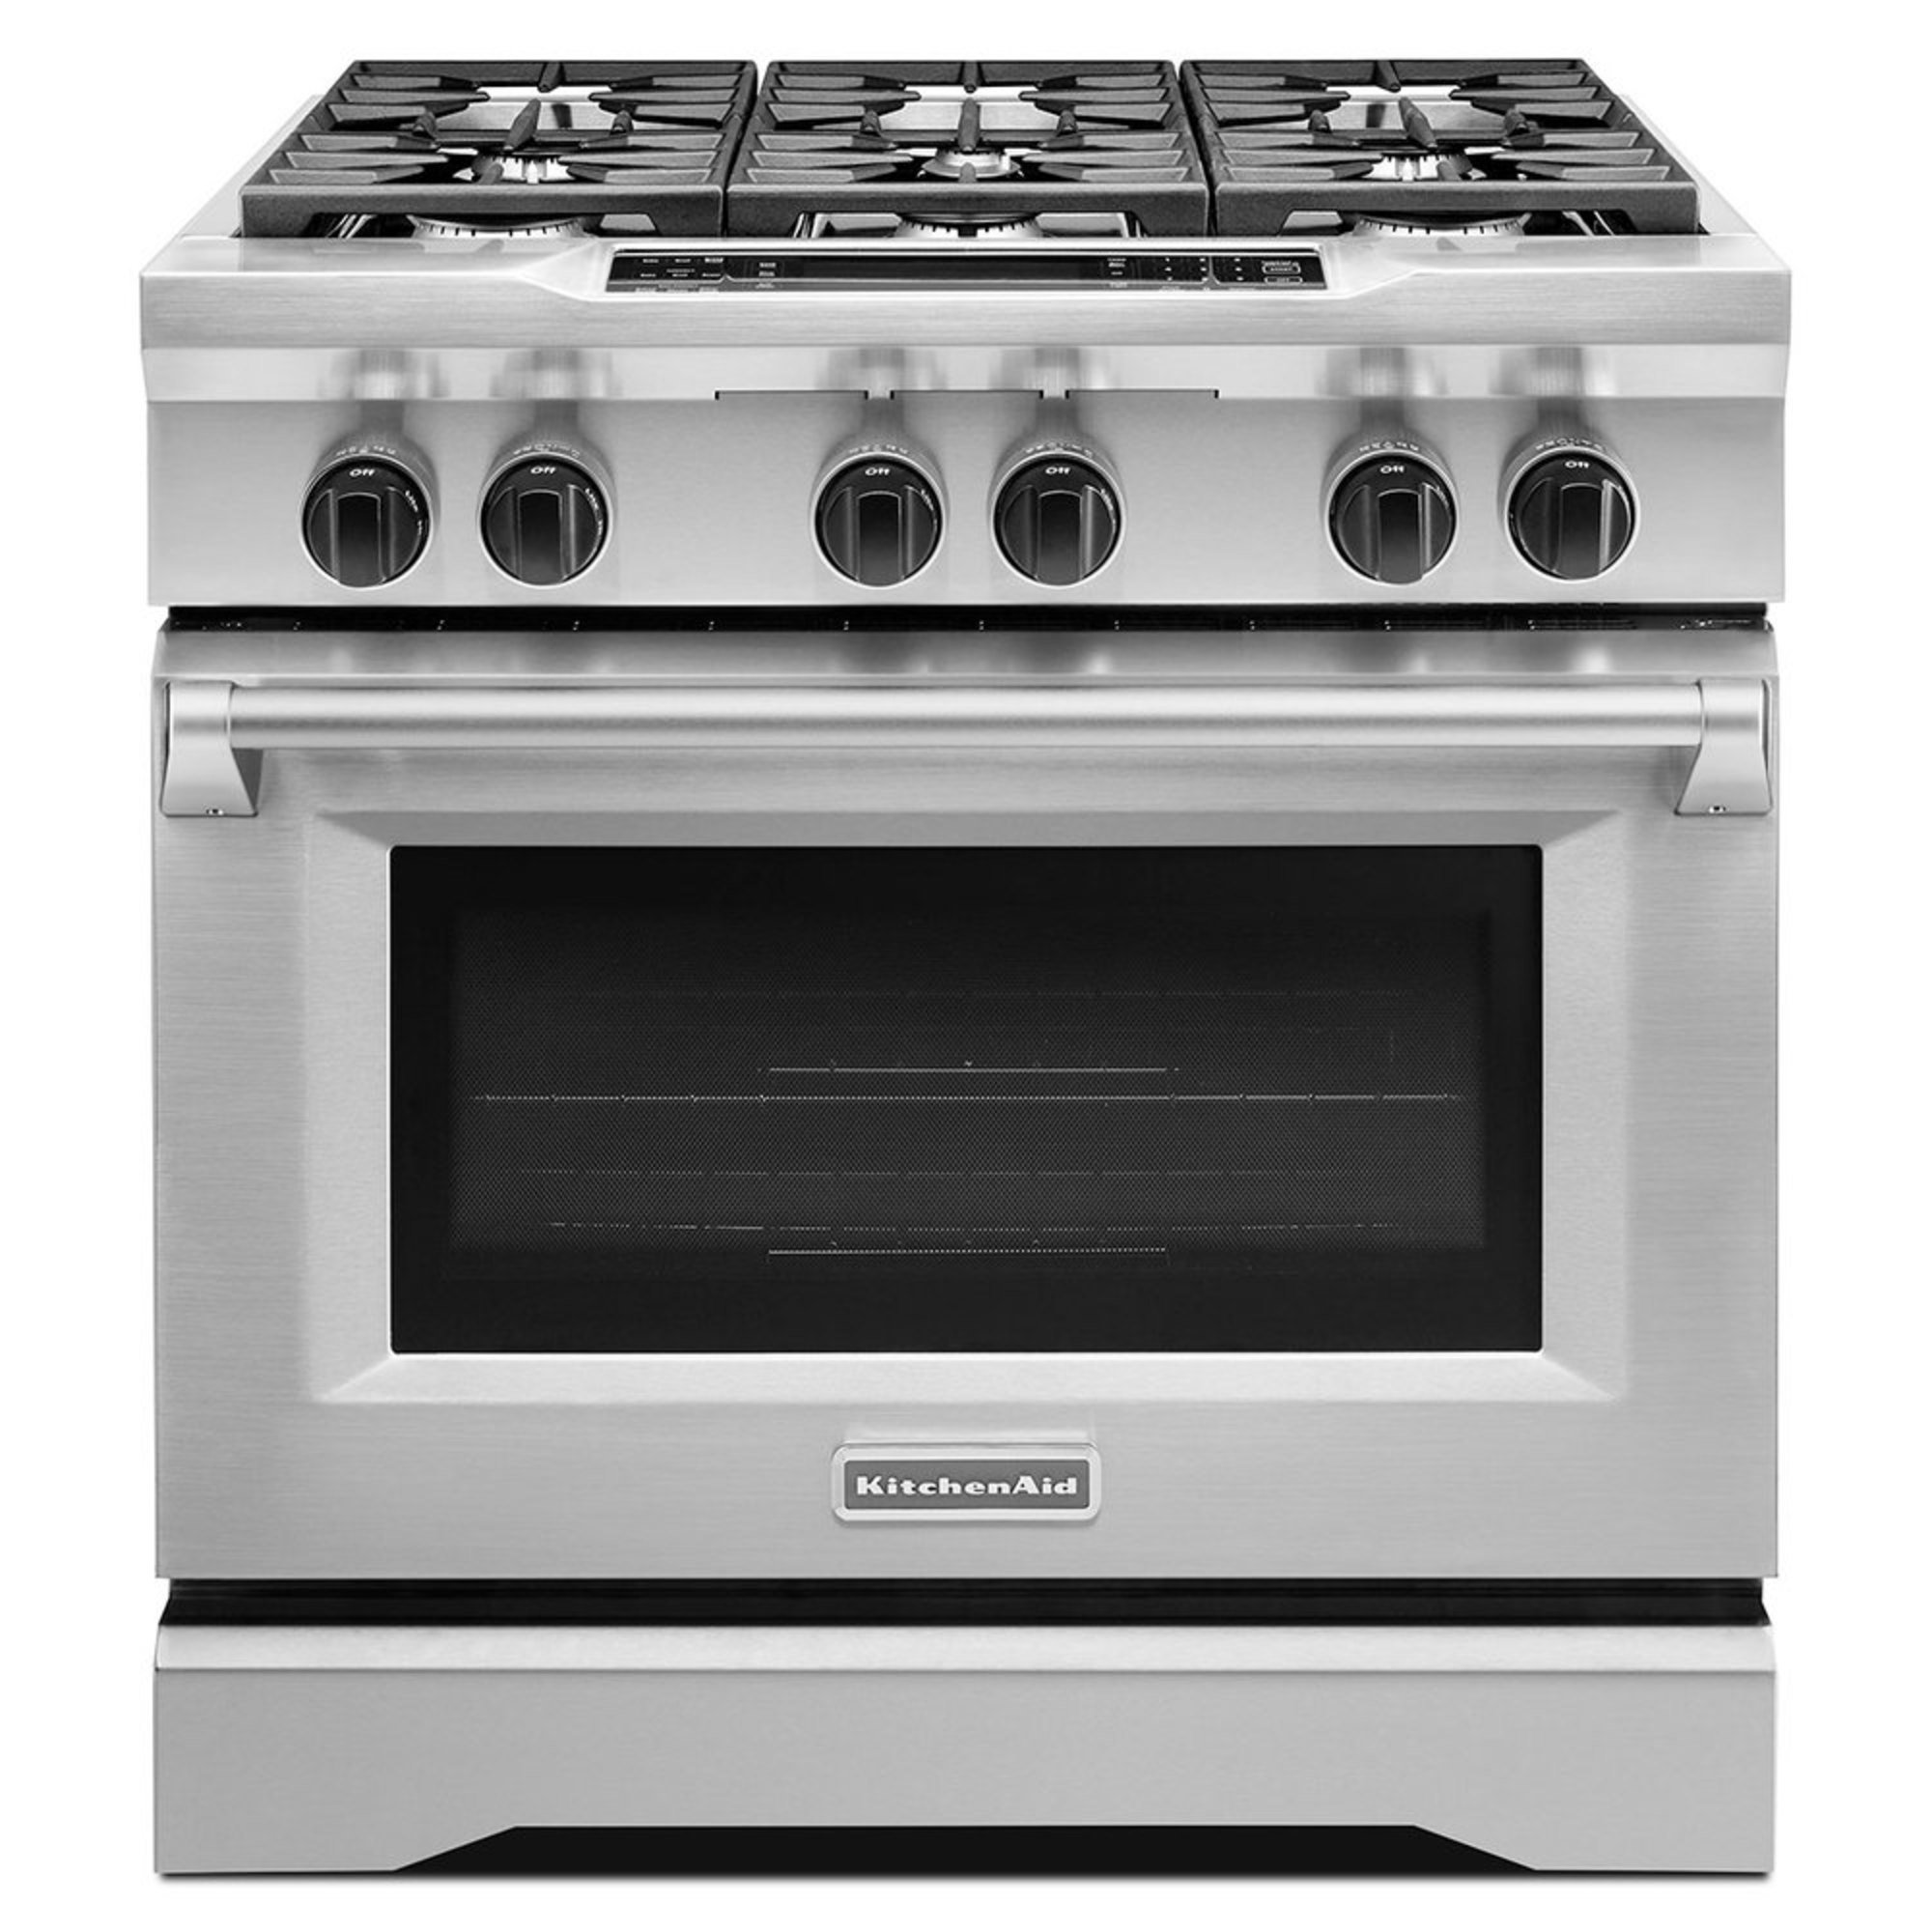 Kitchenaid 36 6 Burner Dual Fuel Freestanding Range Stainless